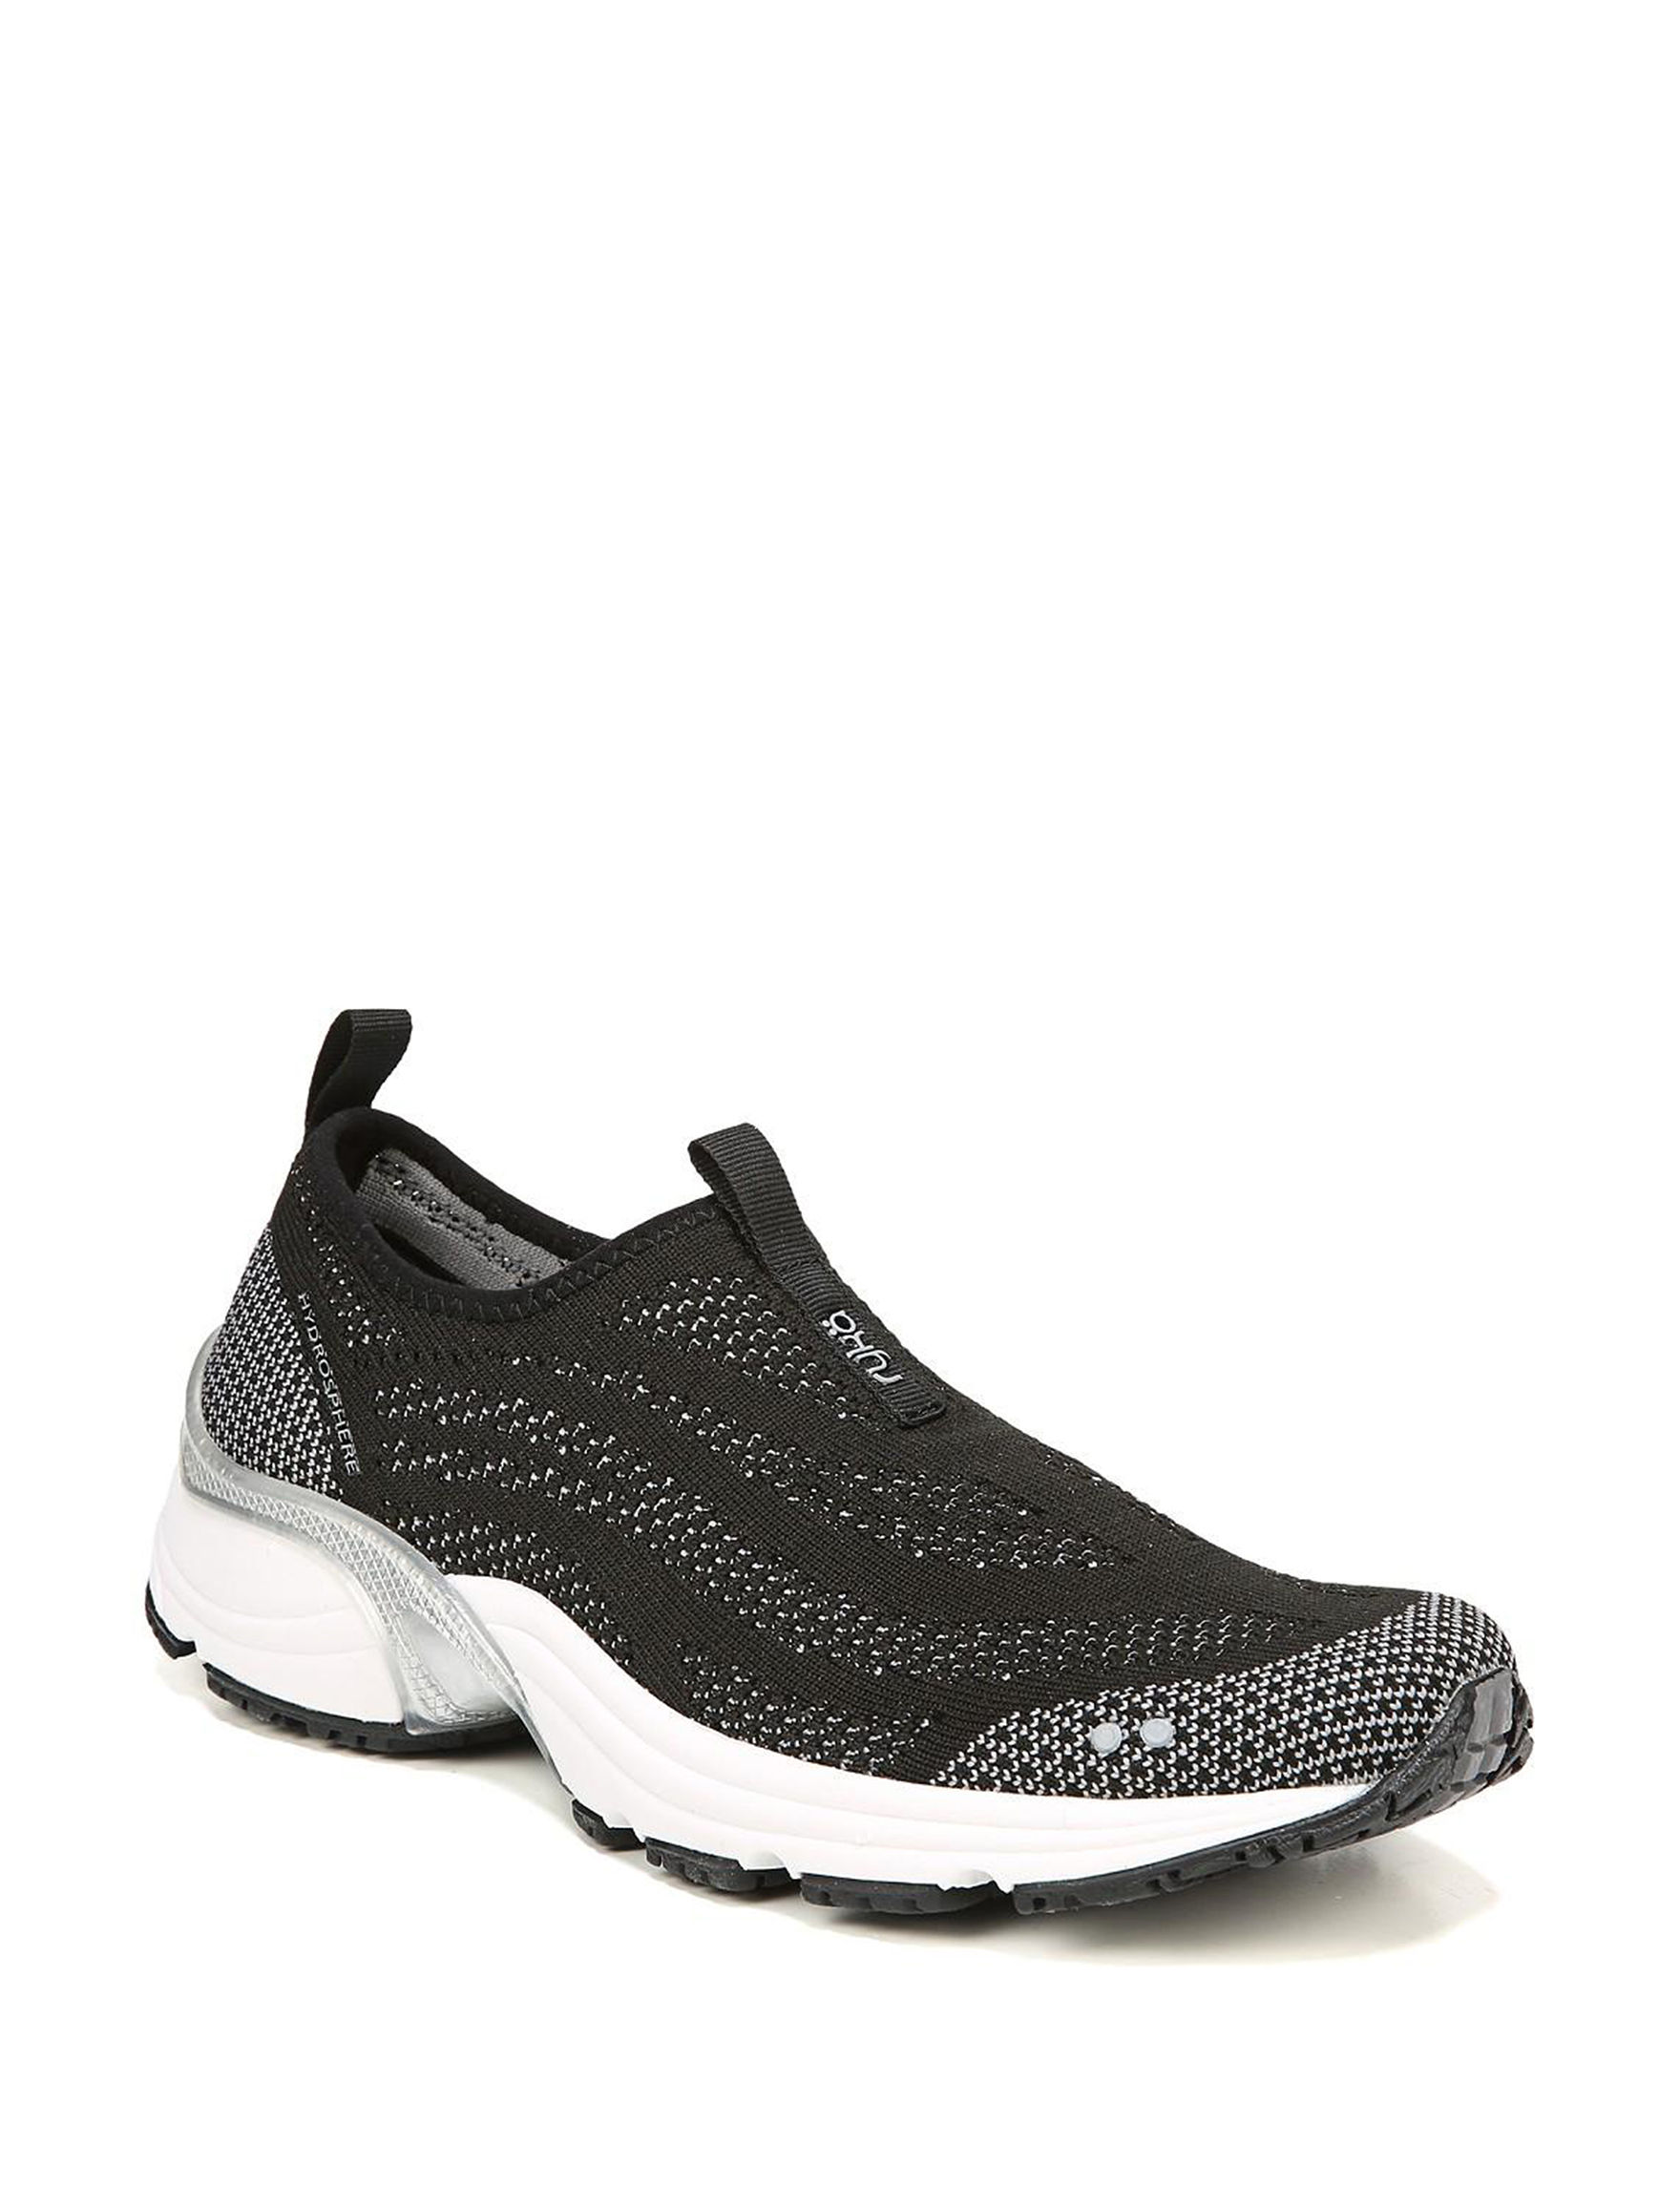 Ryka Black / White Comfort Shoes